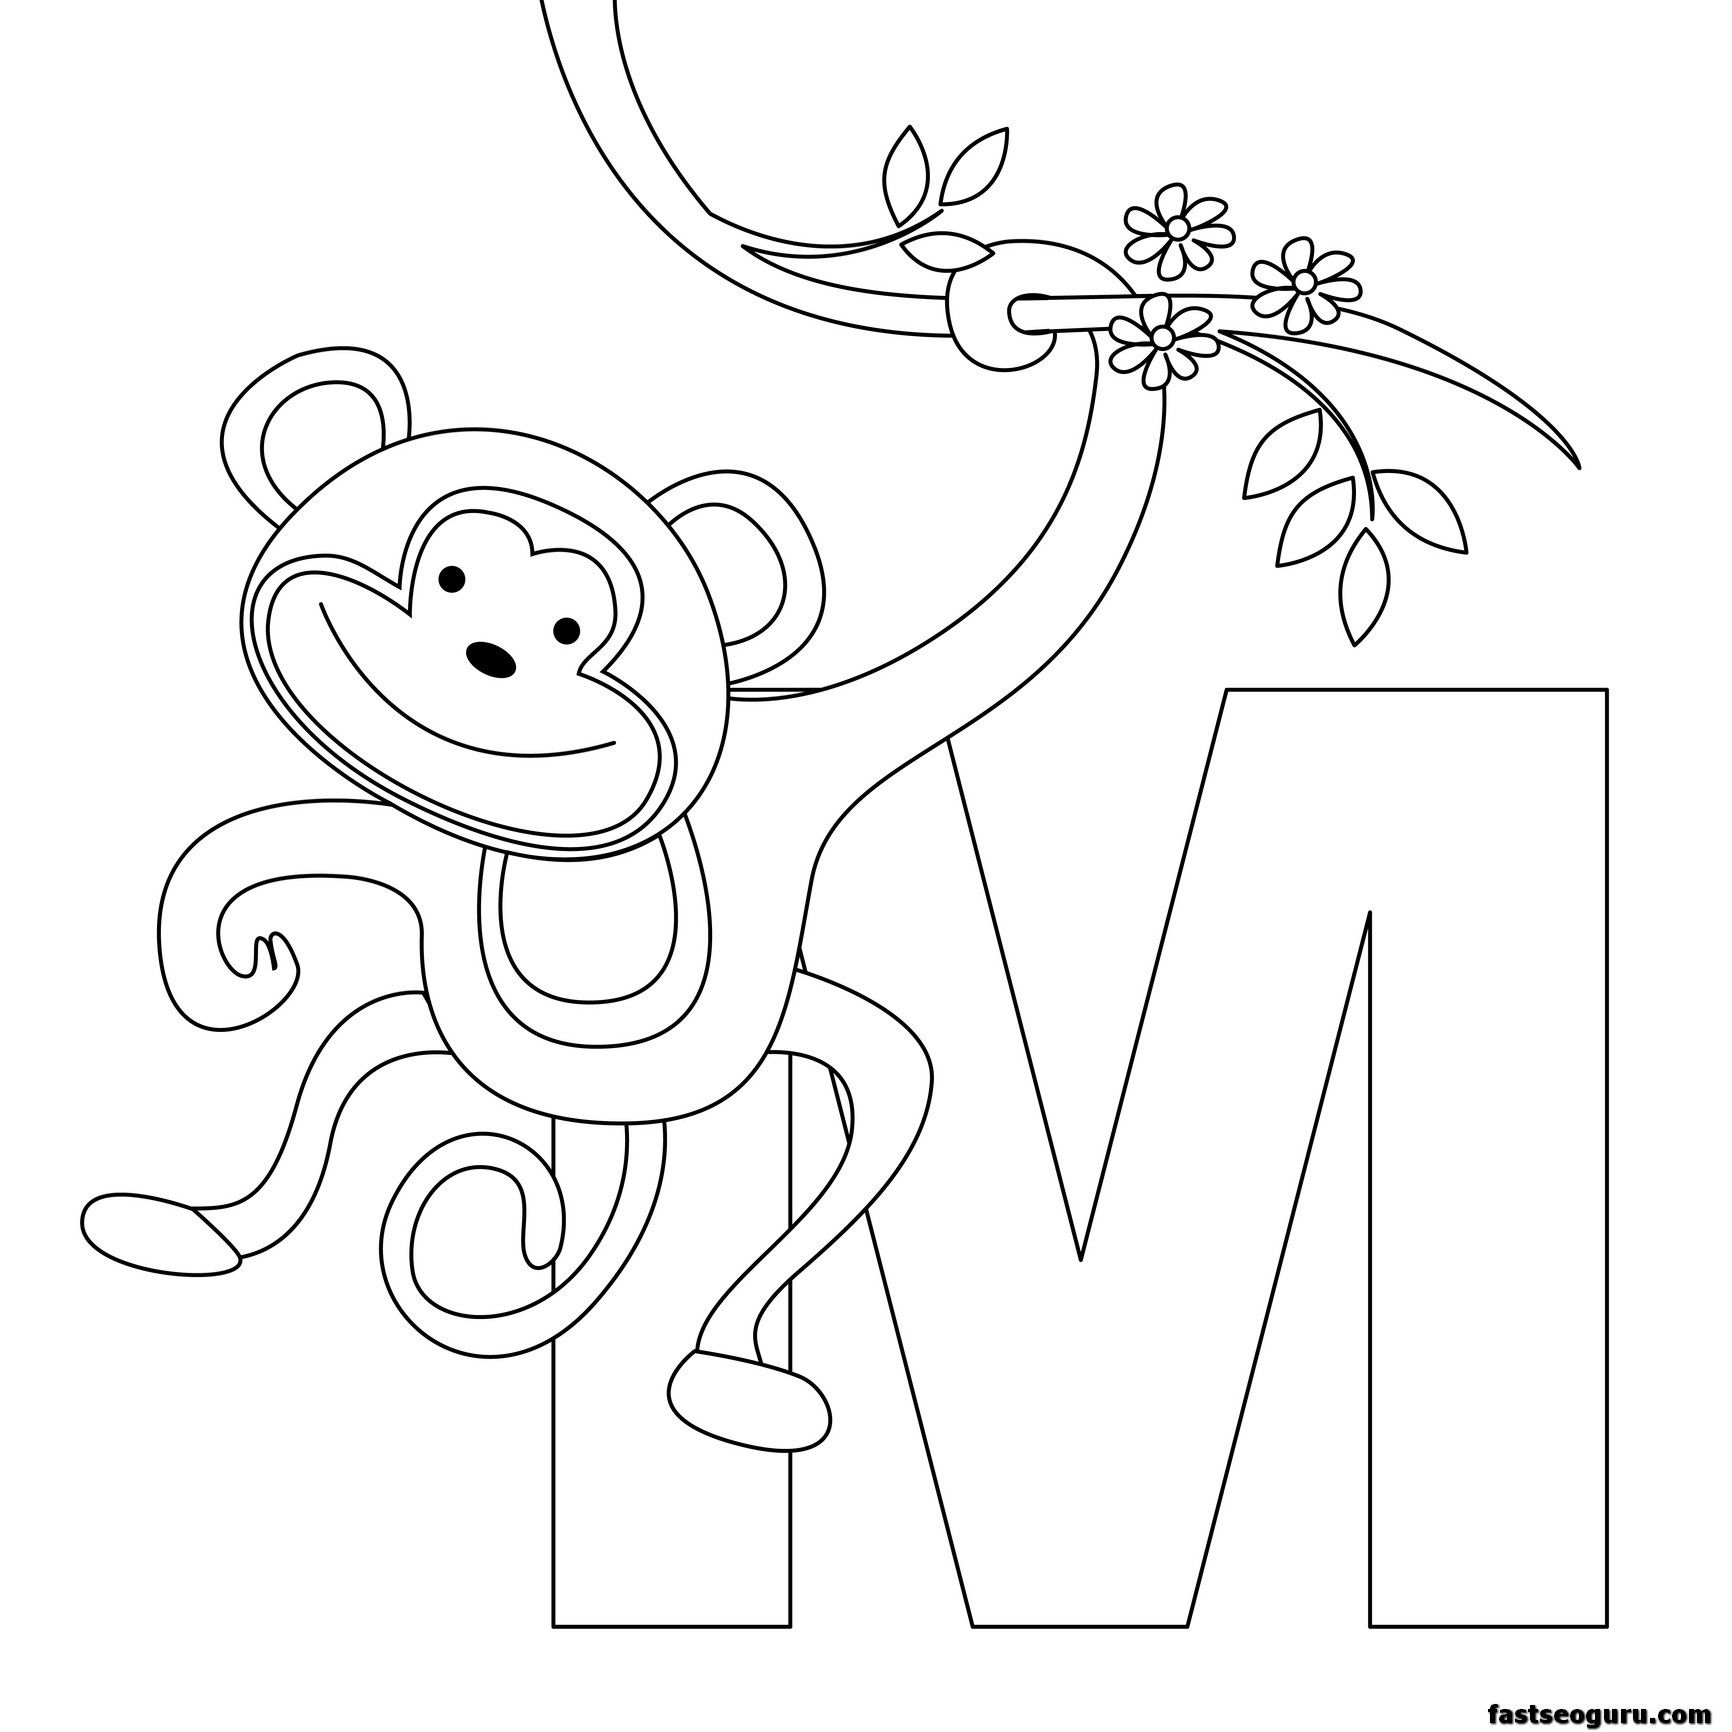 Alphabet Animal Coloring Pages Free Coloring Pages Download | Xsibe ...